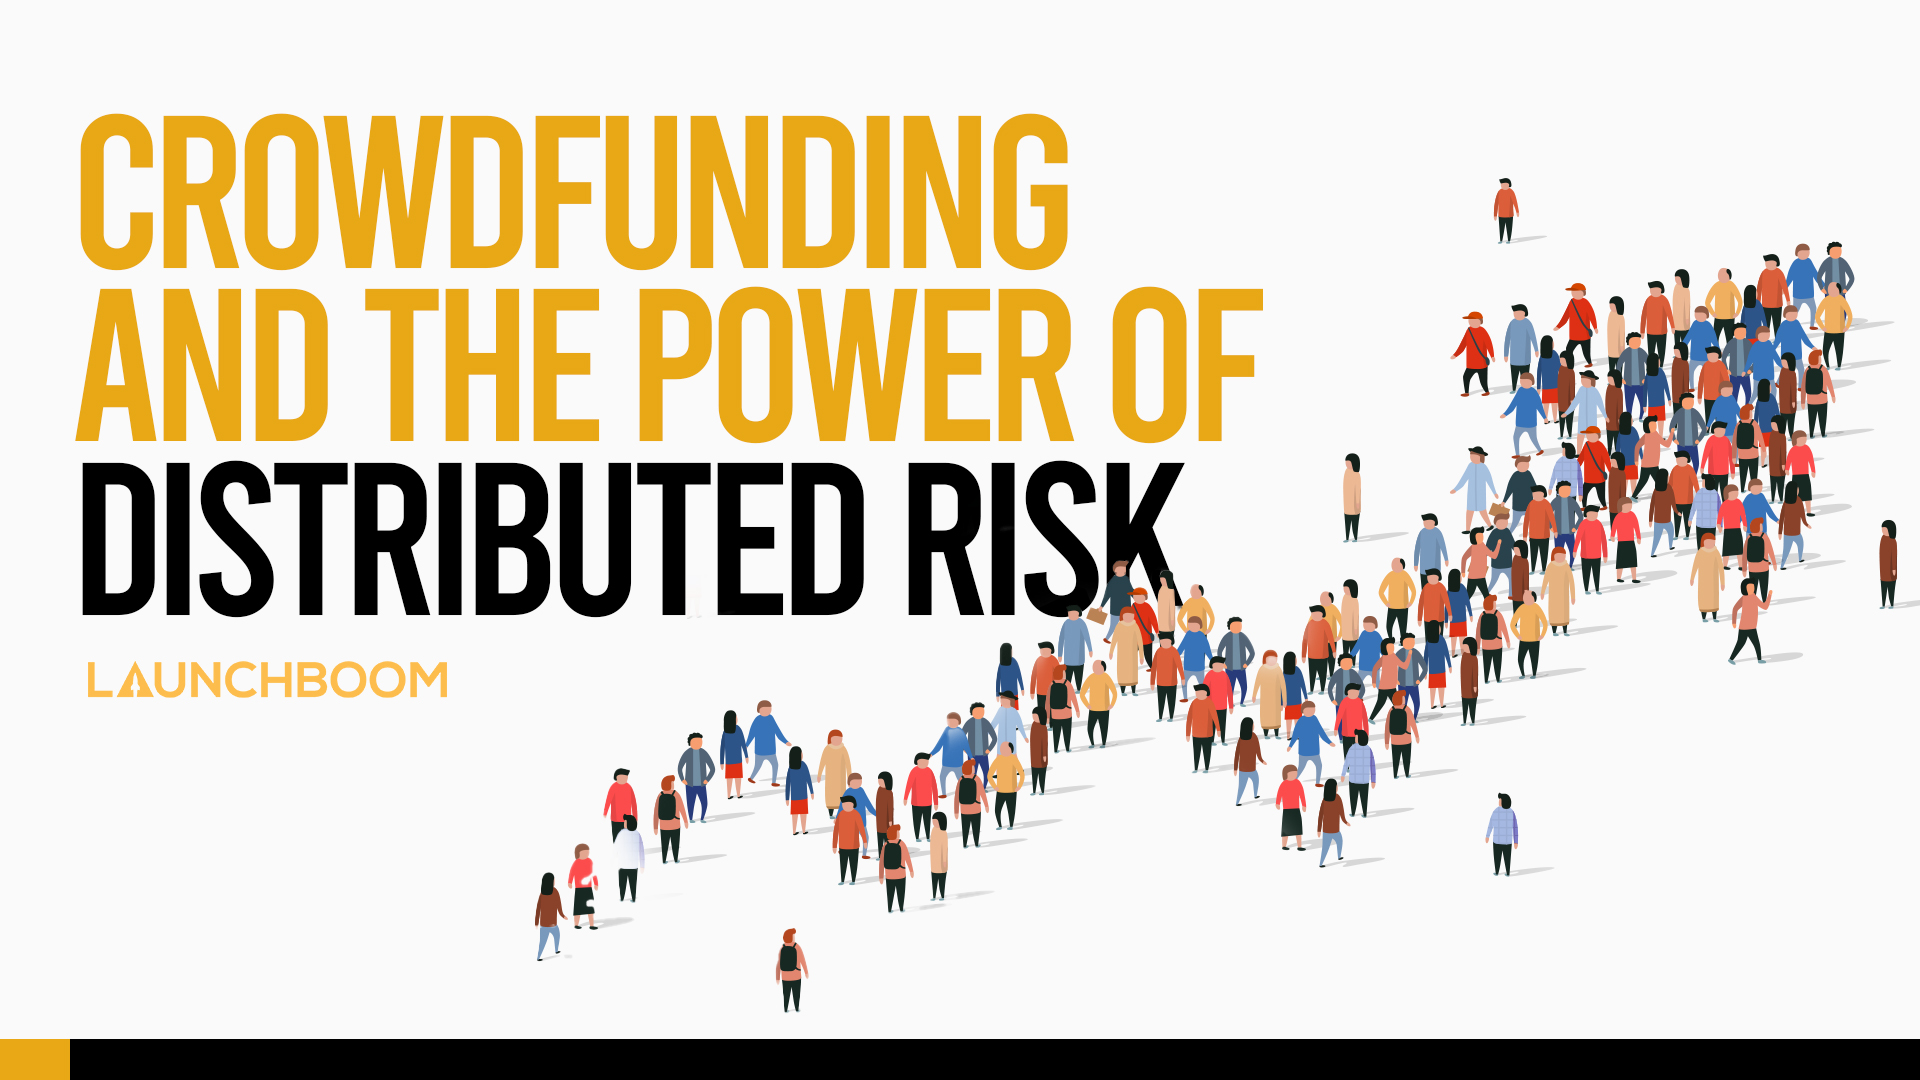 Crowdfunding and the power of distributed risk